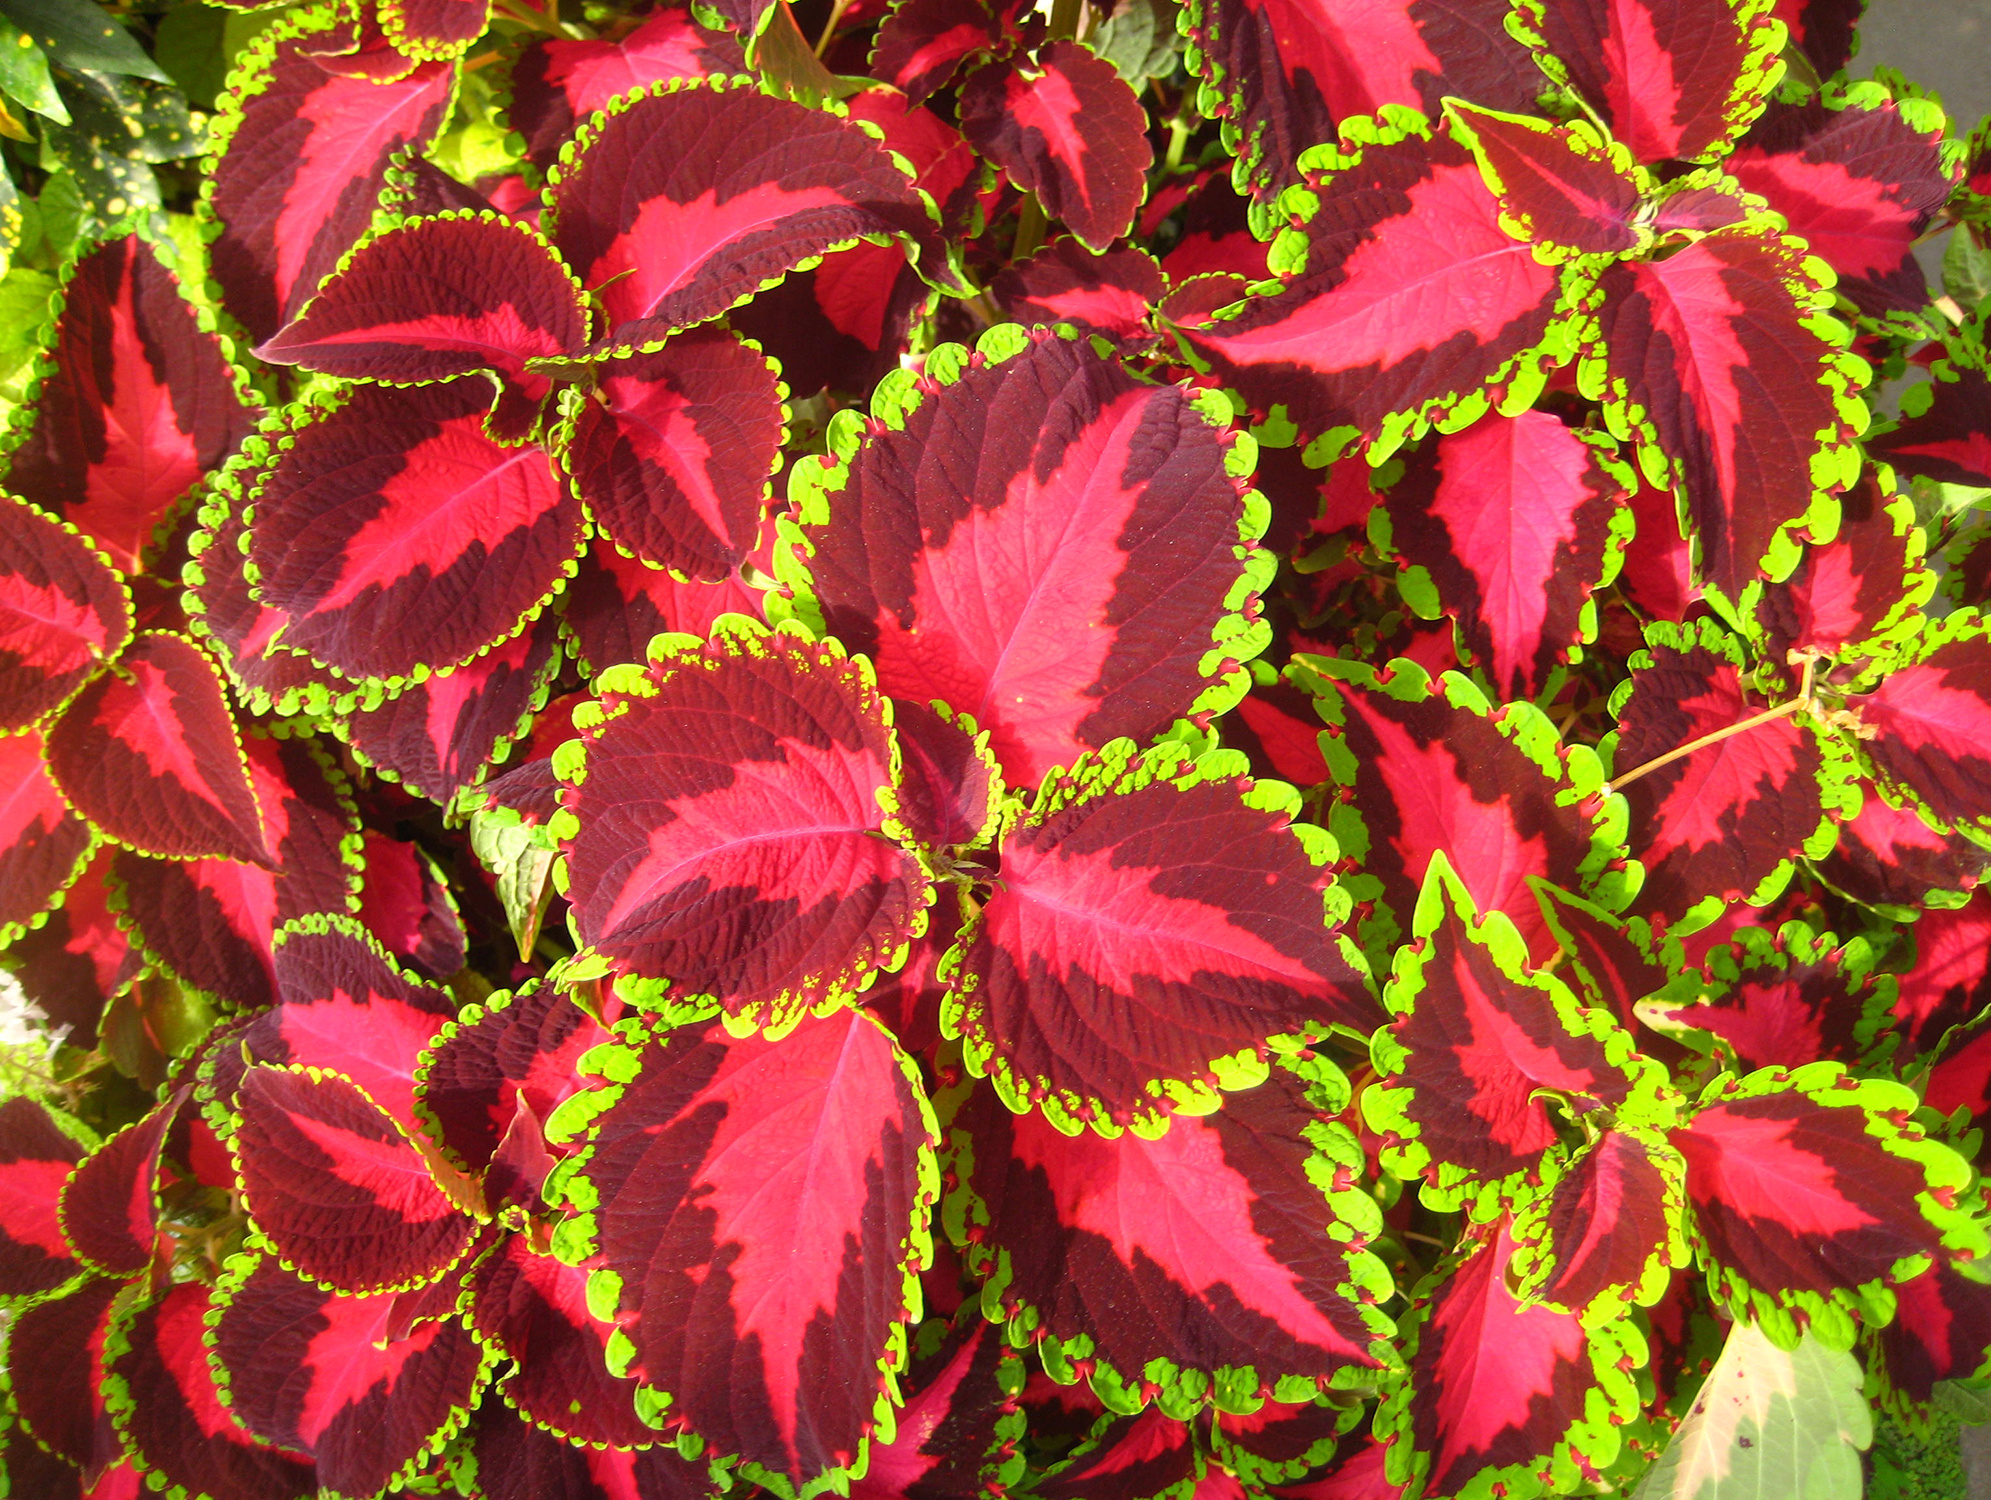 Coleus Plants With Their Wildly Colored Leaves Are Well Suited As Fillers For